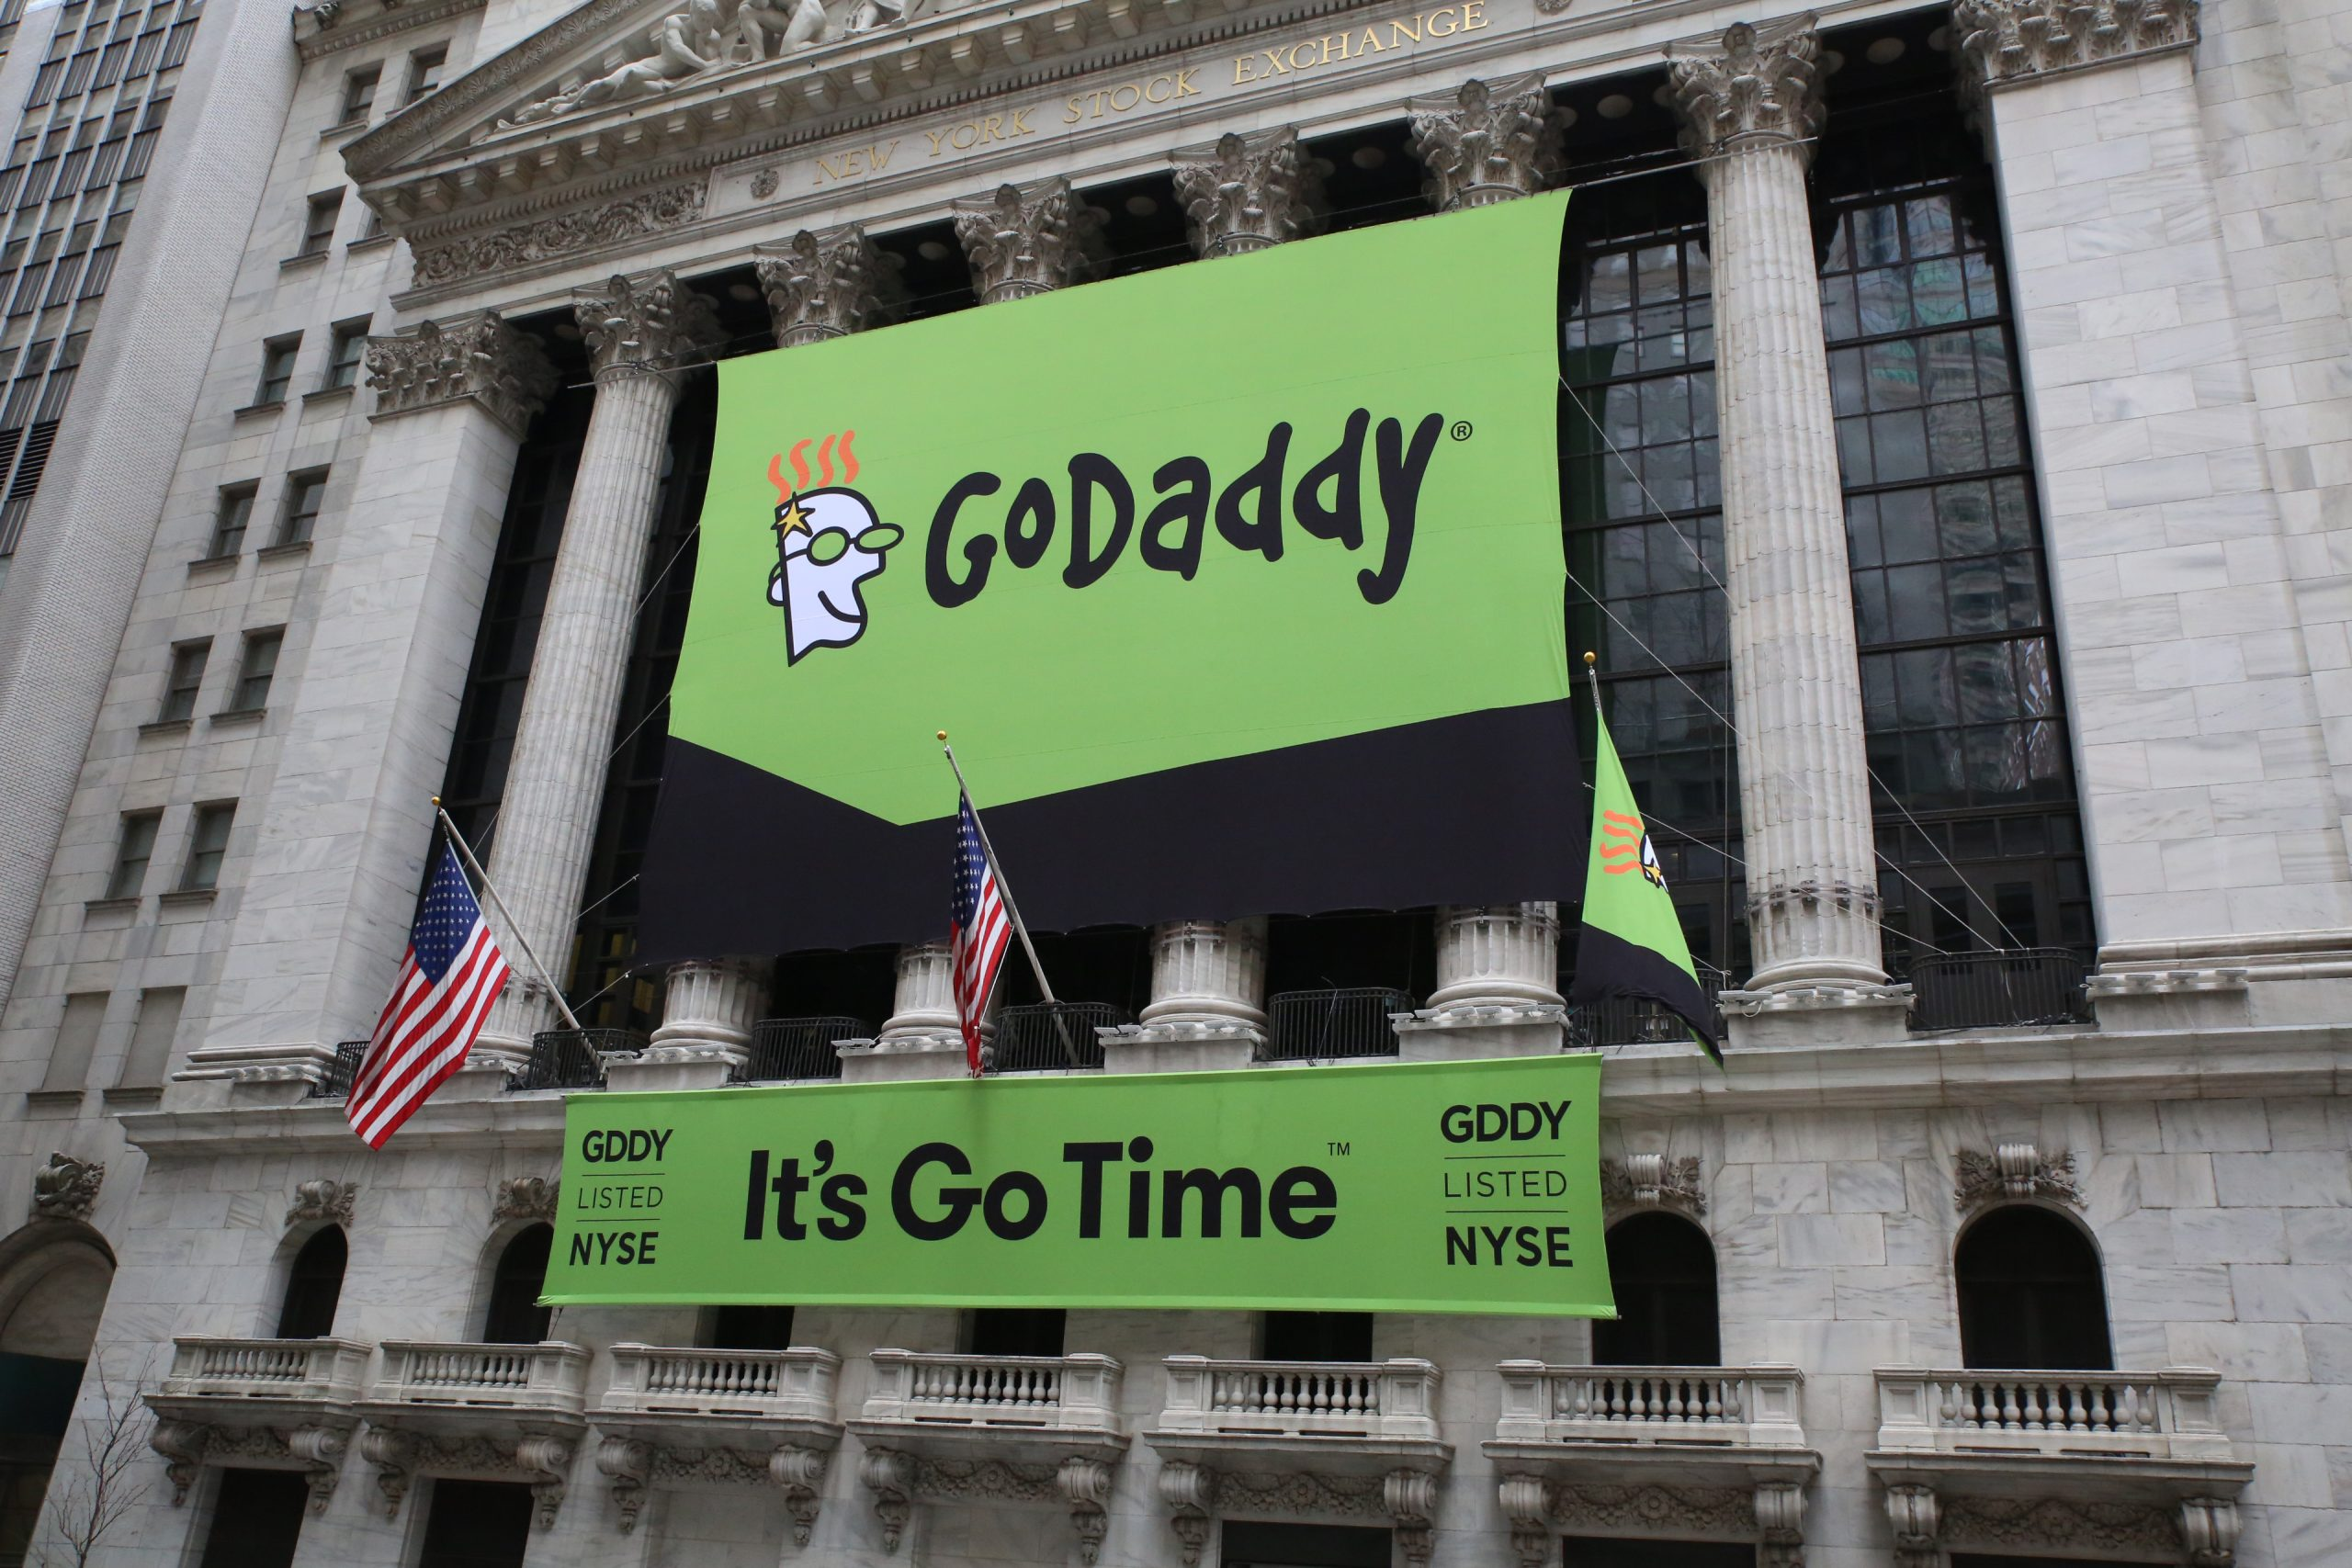 GoDaddy Employees Were Told They Were Getting a Holiday Bonus. It Was Actually a Phishing Test.